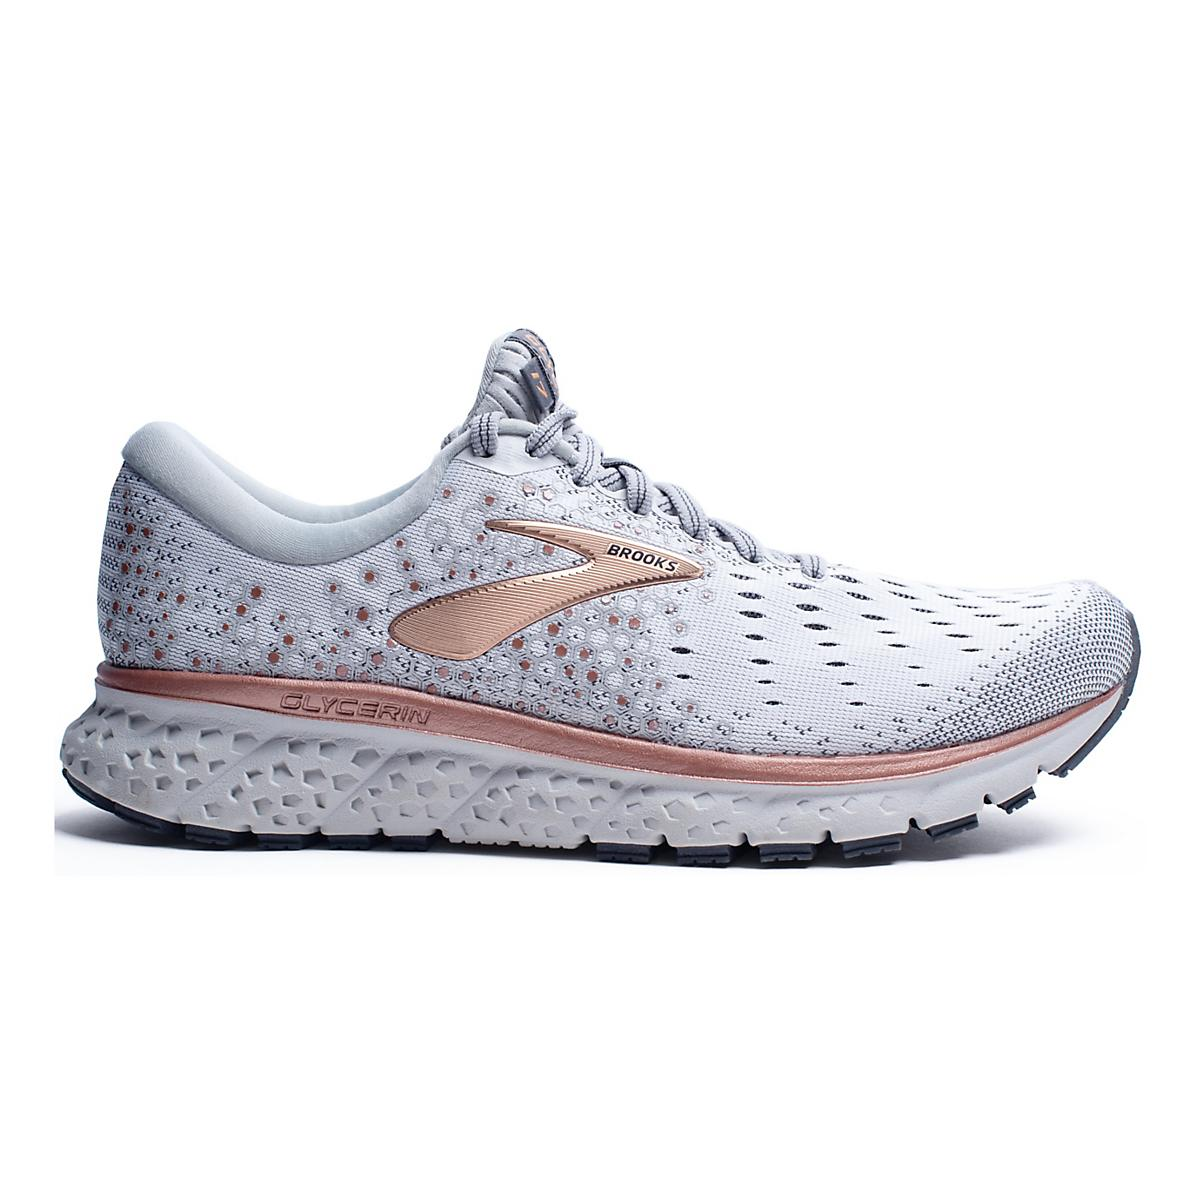 c5e526f31cf9d Womens Brooks Glycerin 17 Metallic Running Shoe at Road Runner Sports